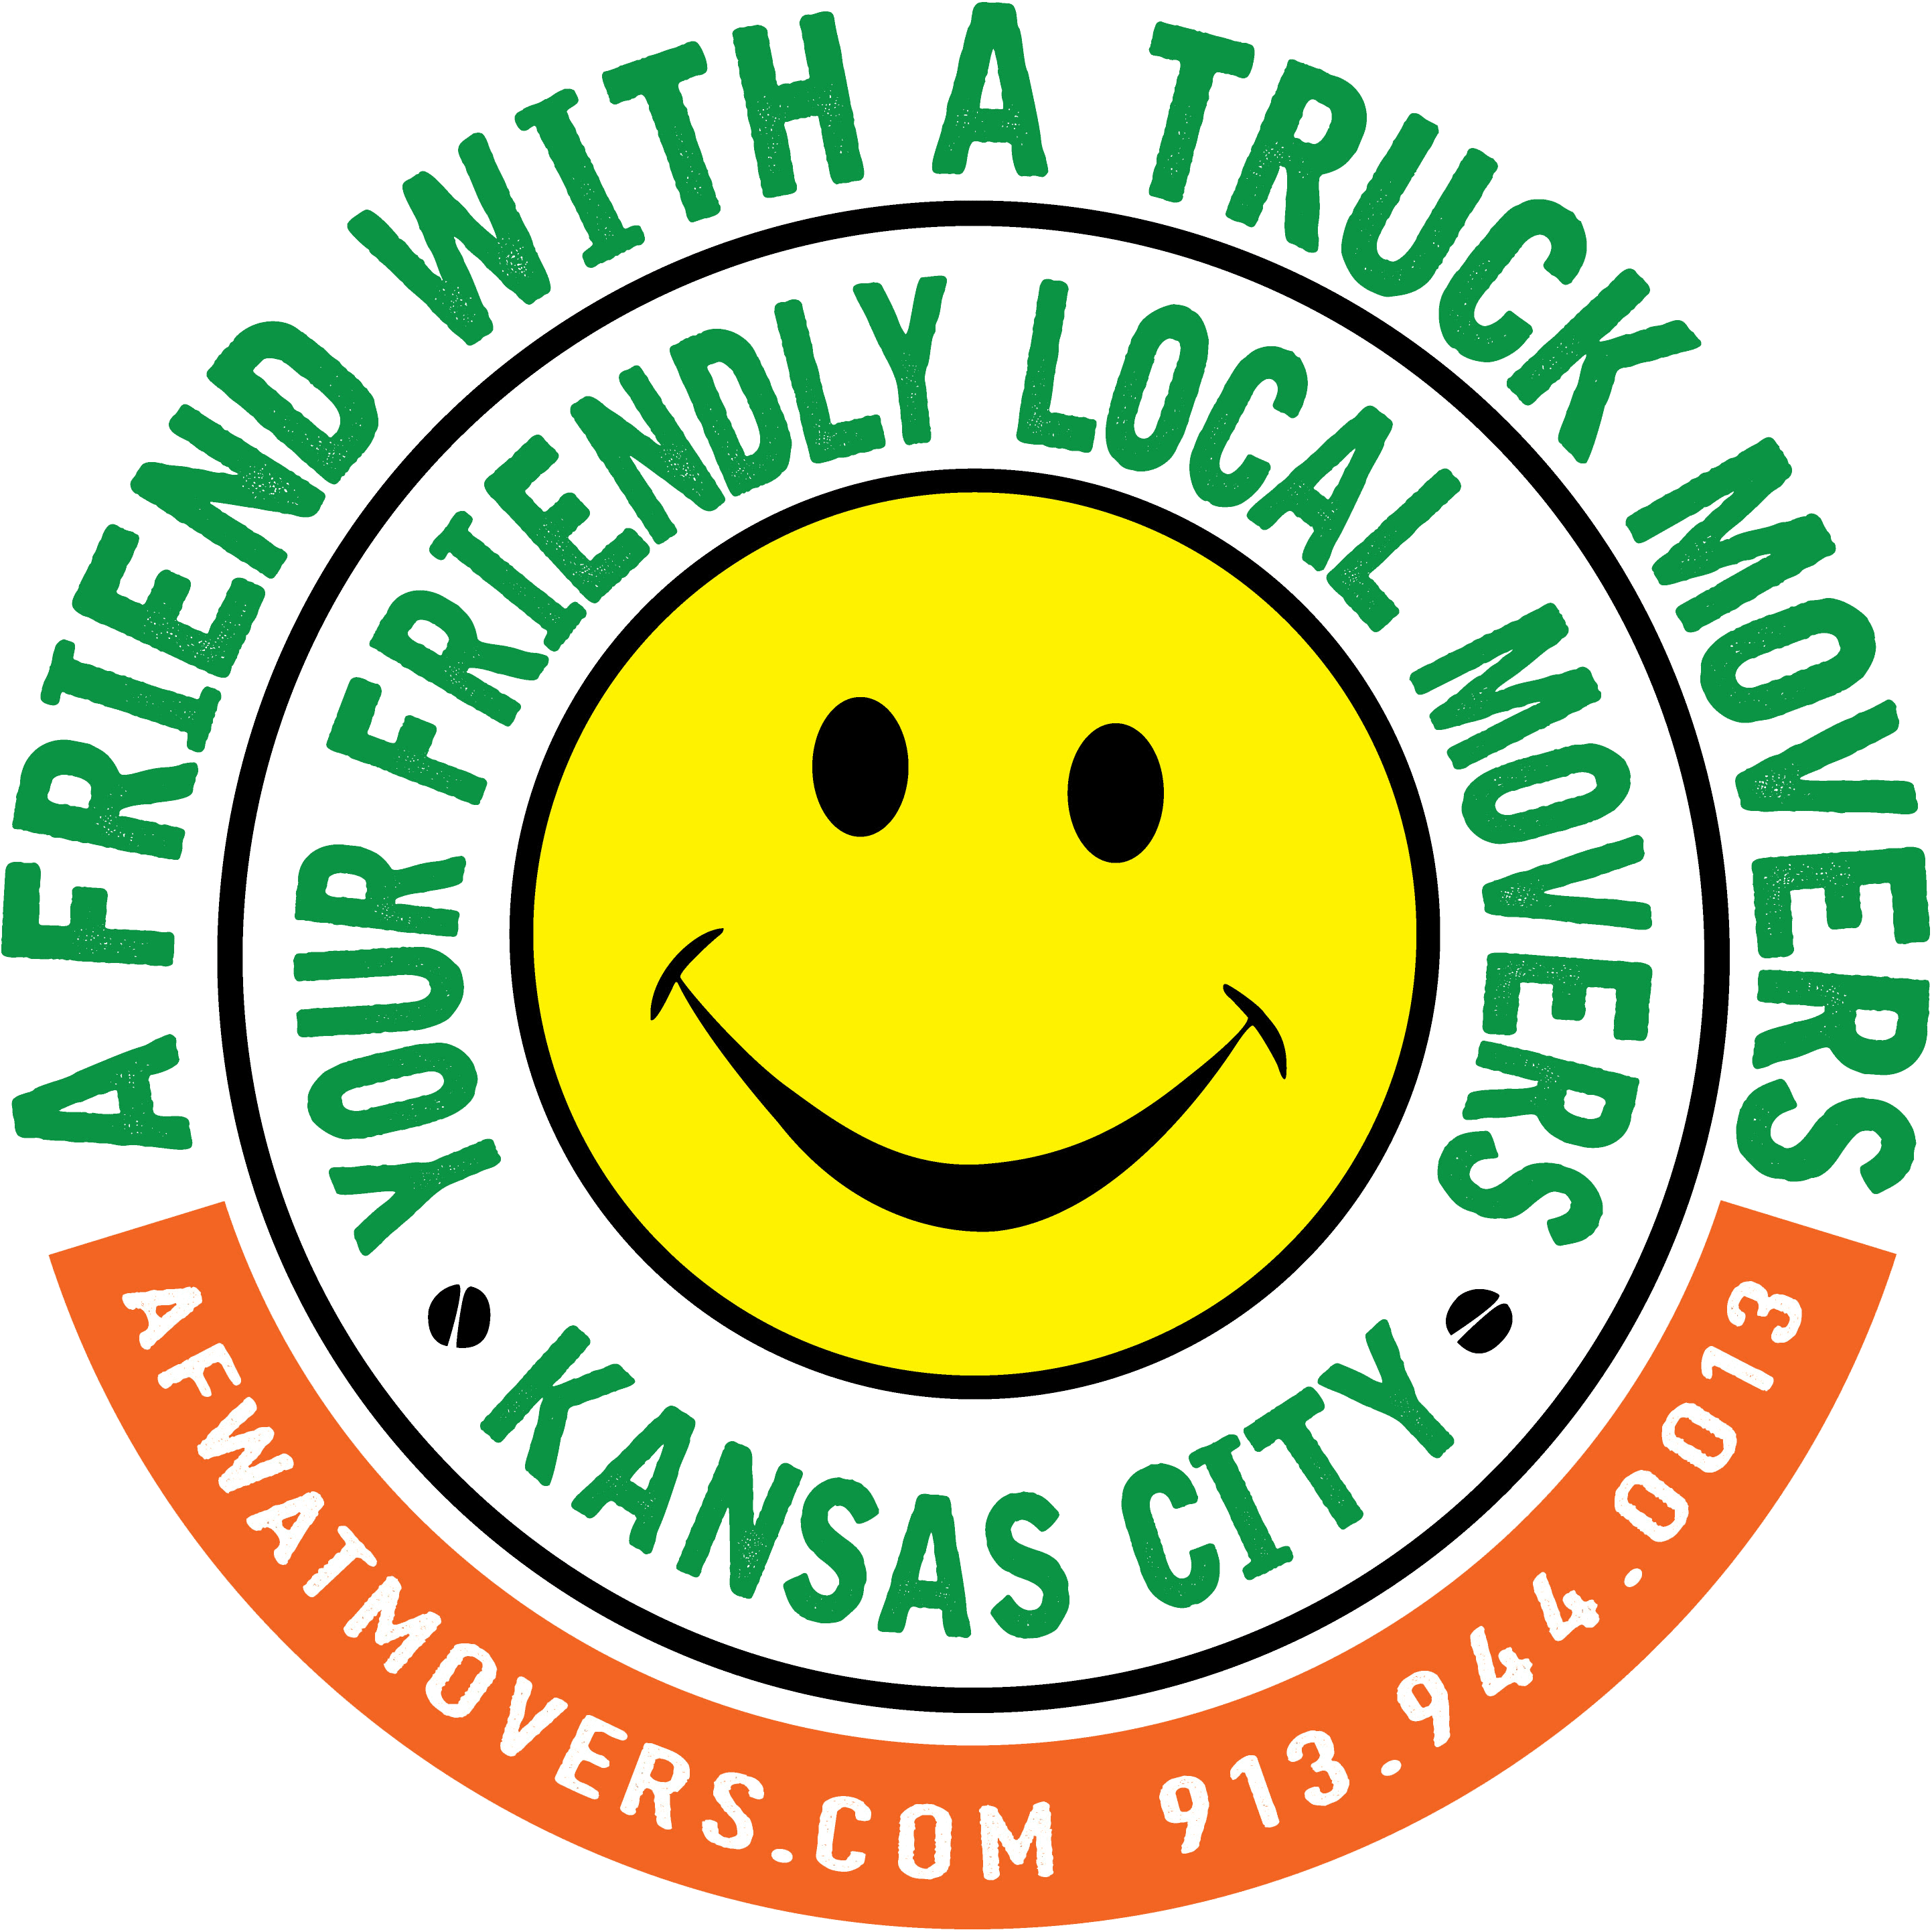 Movers Quote Mover In Kansas City Missouri  A Friend With A Truck Movers